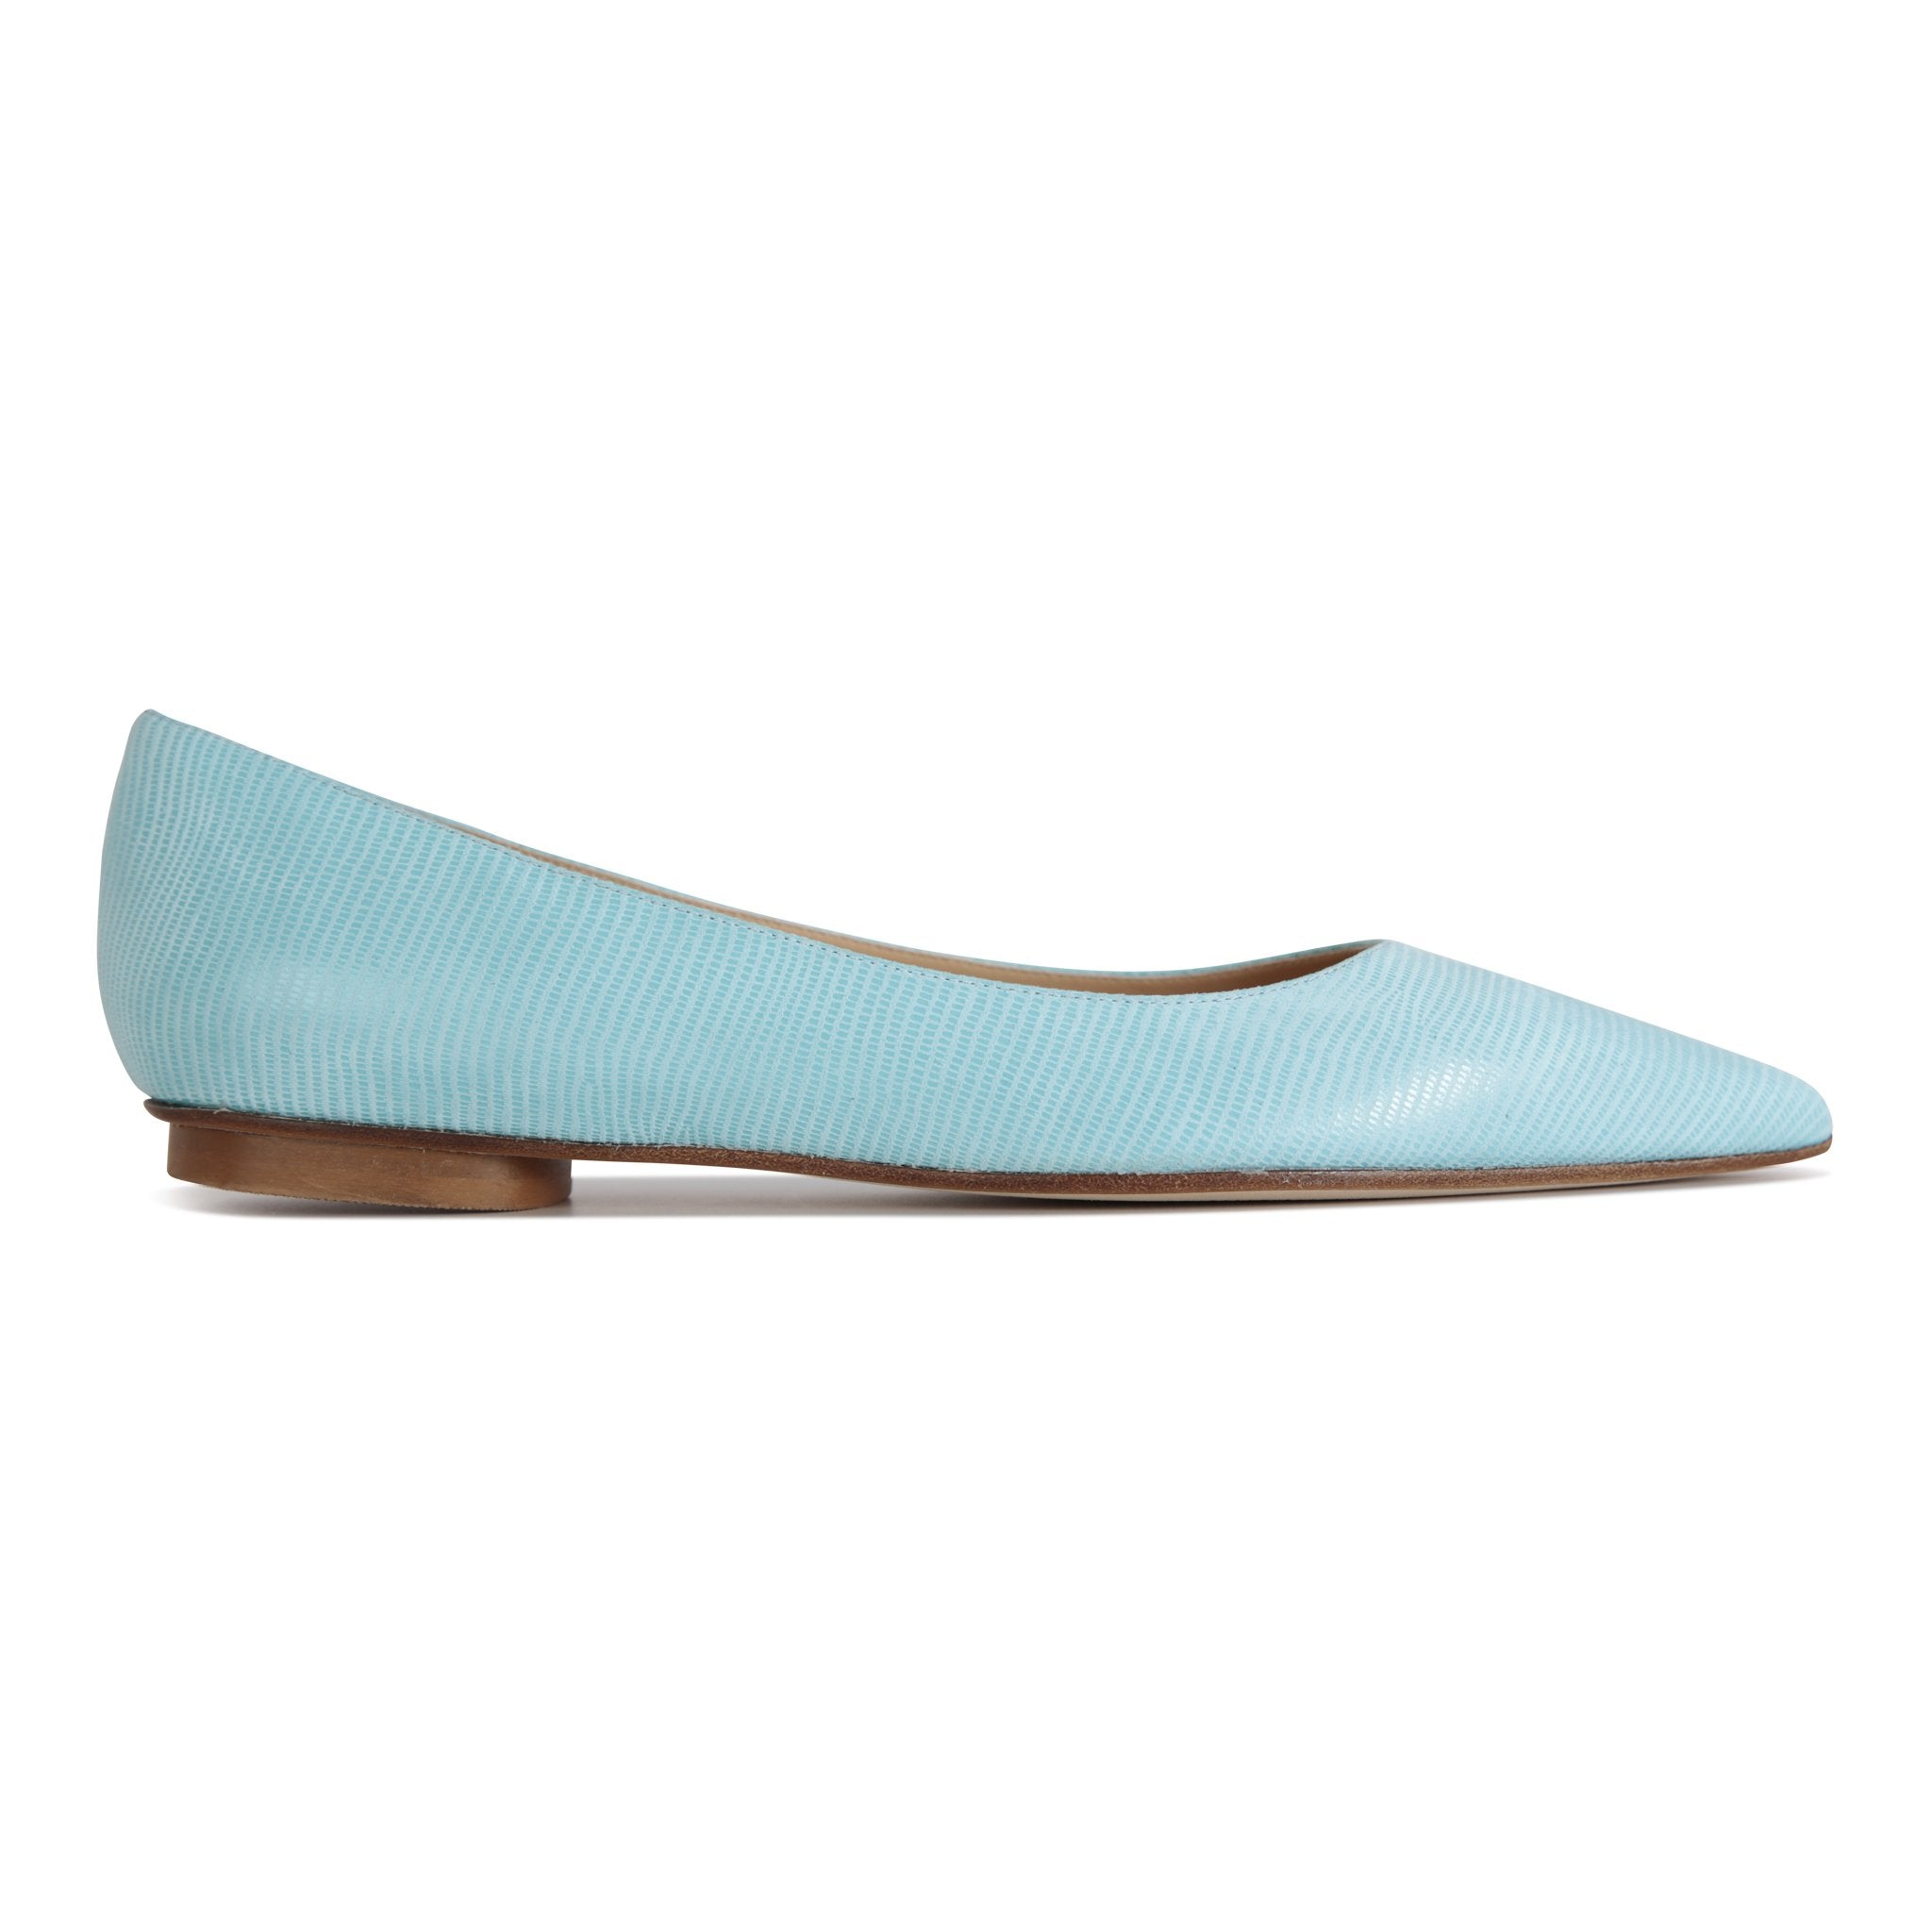 COMO - Varanus Sky Mint, VIAJIYU - Women's Hand Made Sustainable Luxury Shoes. Made in Italy. Made to Order.